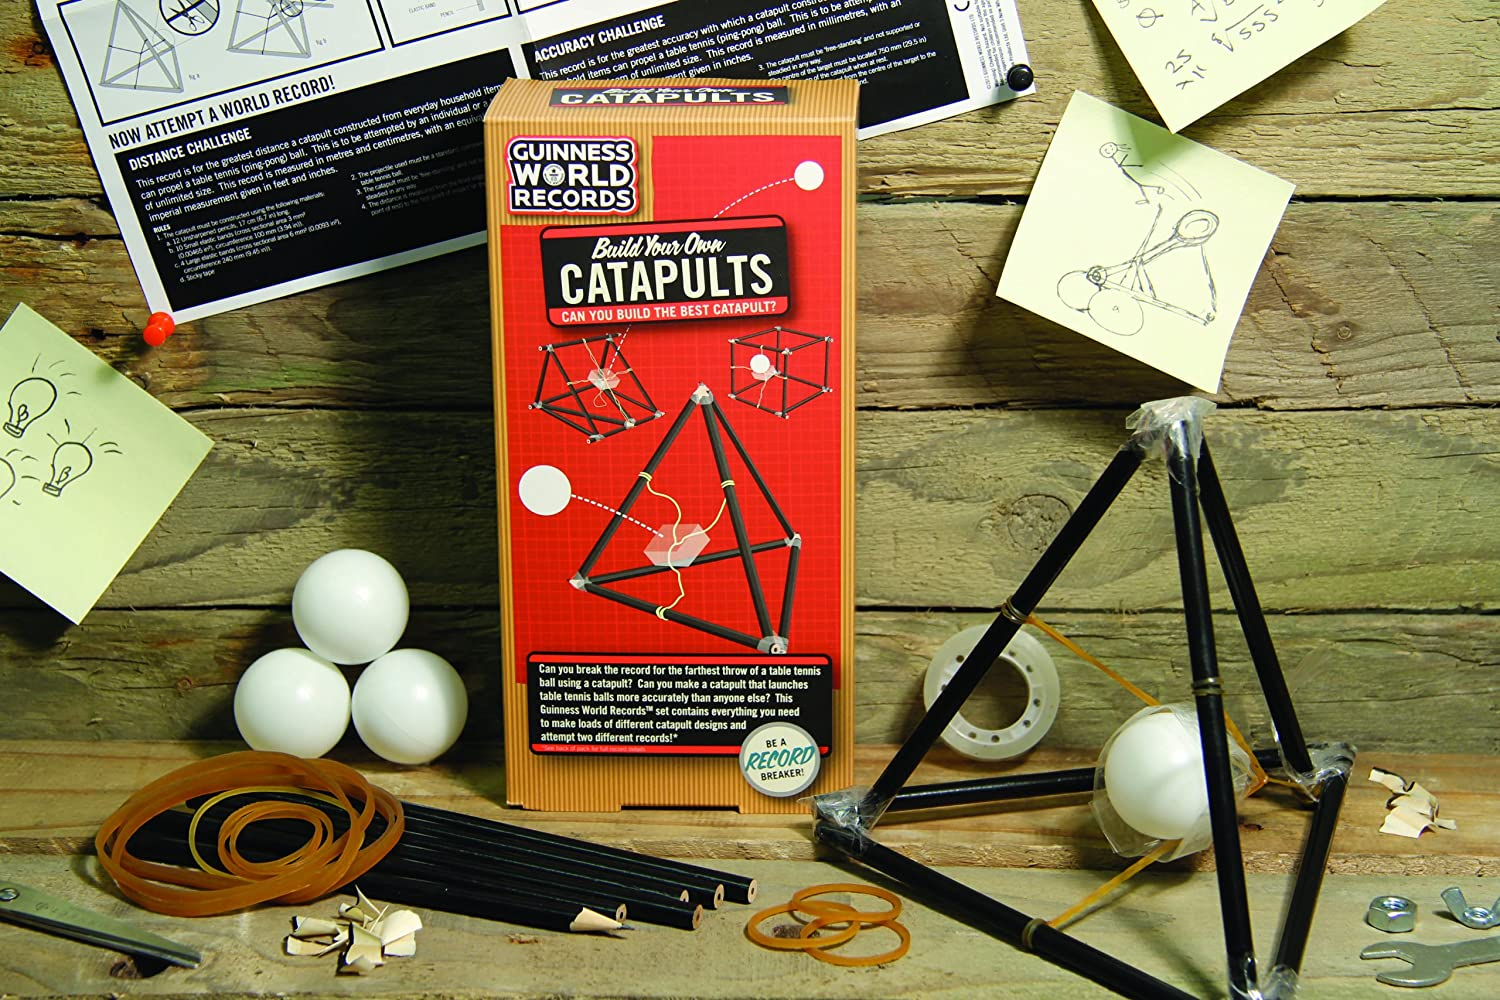 Guinness World Records - Build Your Own Catapults